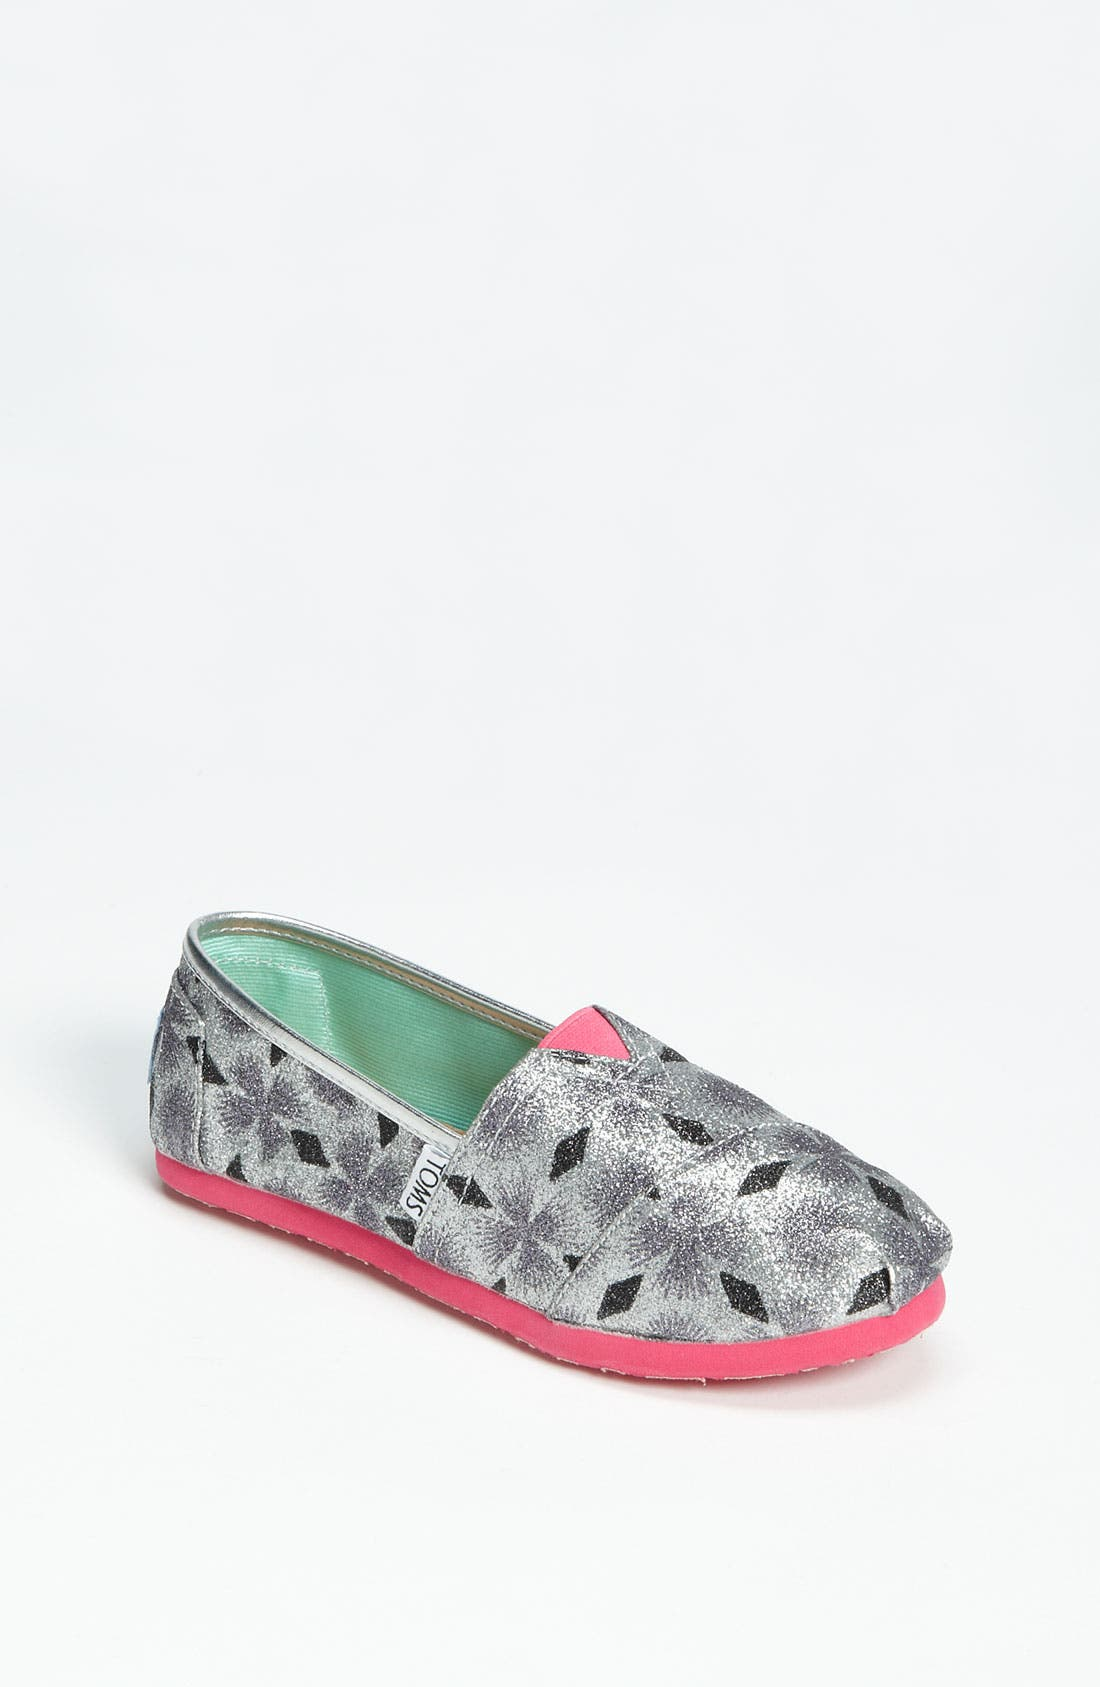 Alternate Image 1 Selected - TOMS 'Classic Youth - Starburst' Slip-On (Little Kid & Big Kid) (Nordstrom Exclusive)